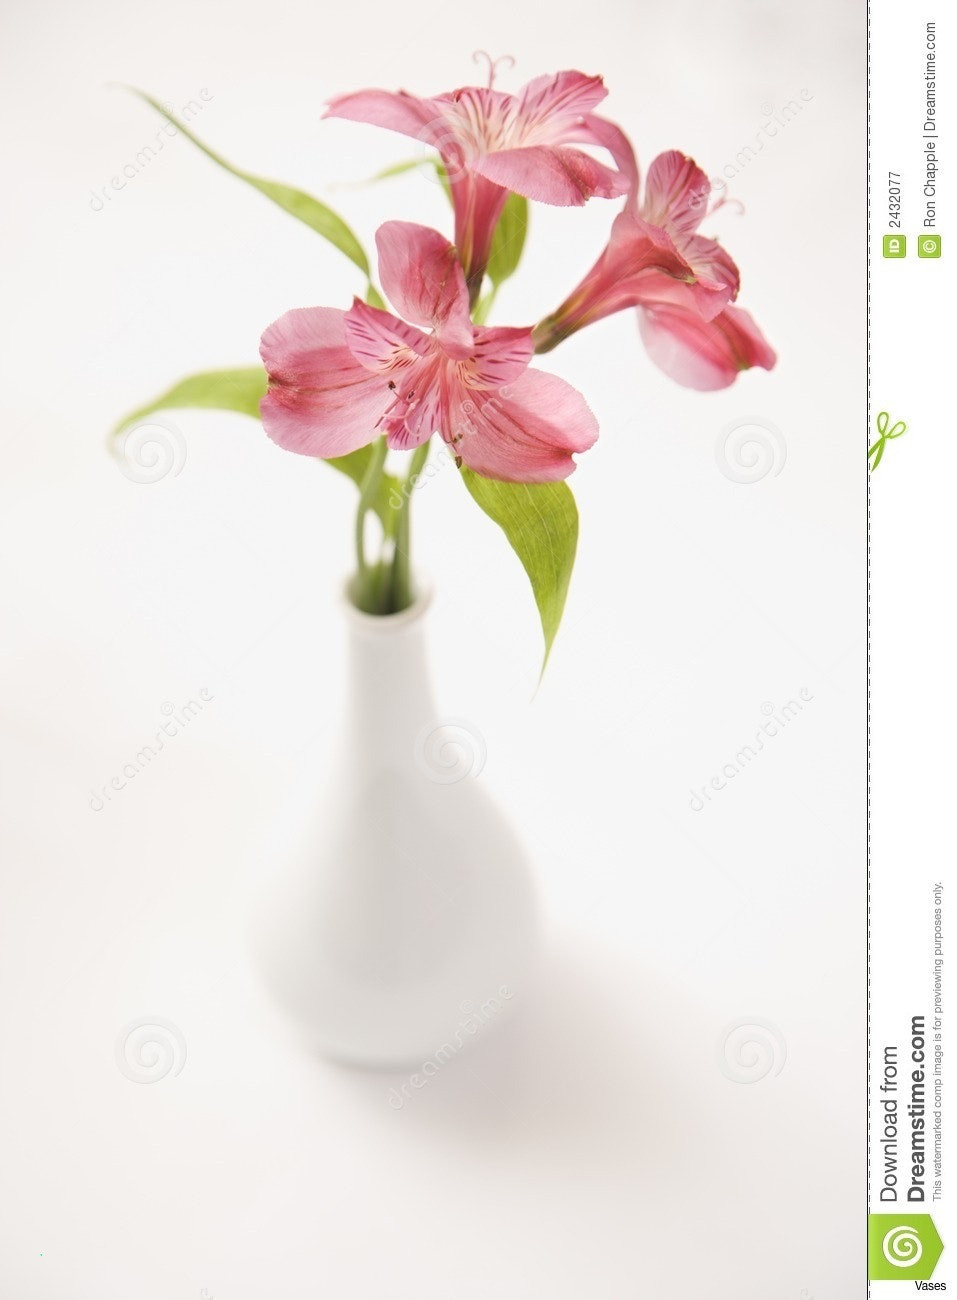 vase of flowers art of sophisticated features flower heart pictures natural zoom intended for download image